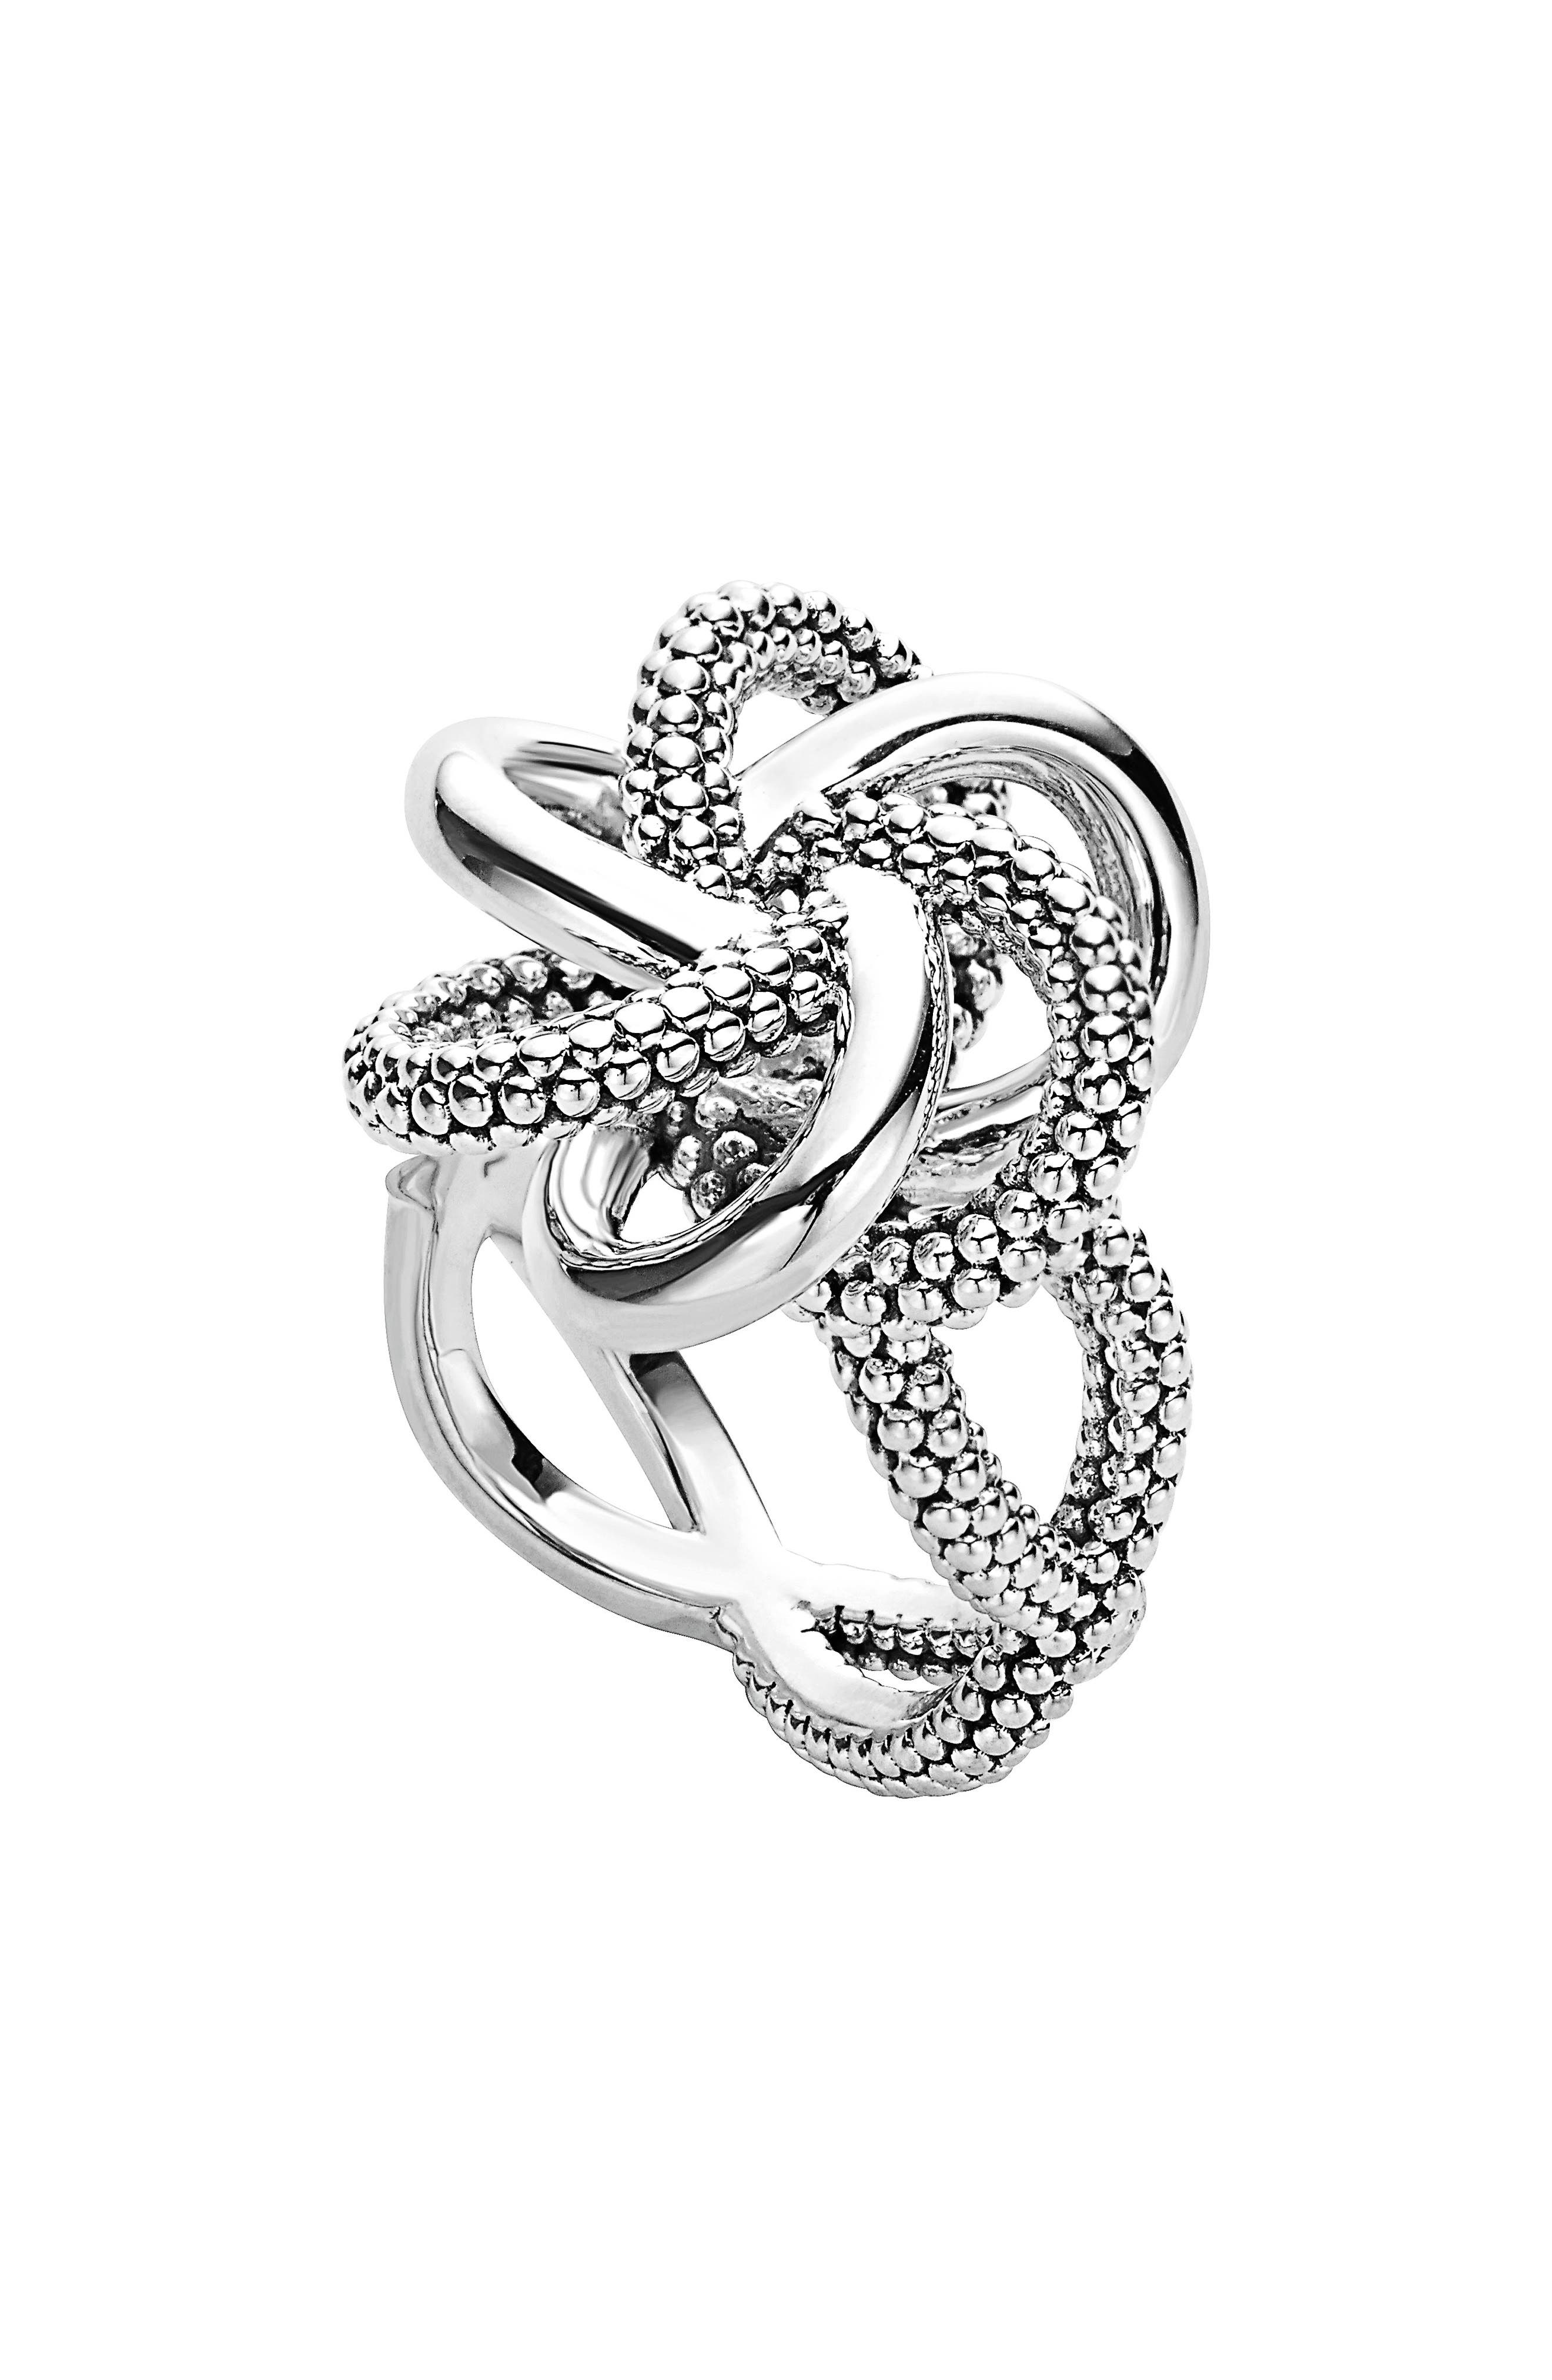 'Love Knot' Twist Ring,                             Alternate thumbnail 2, color,                             040